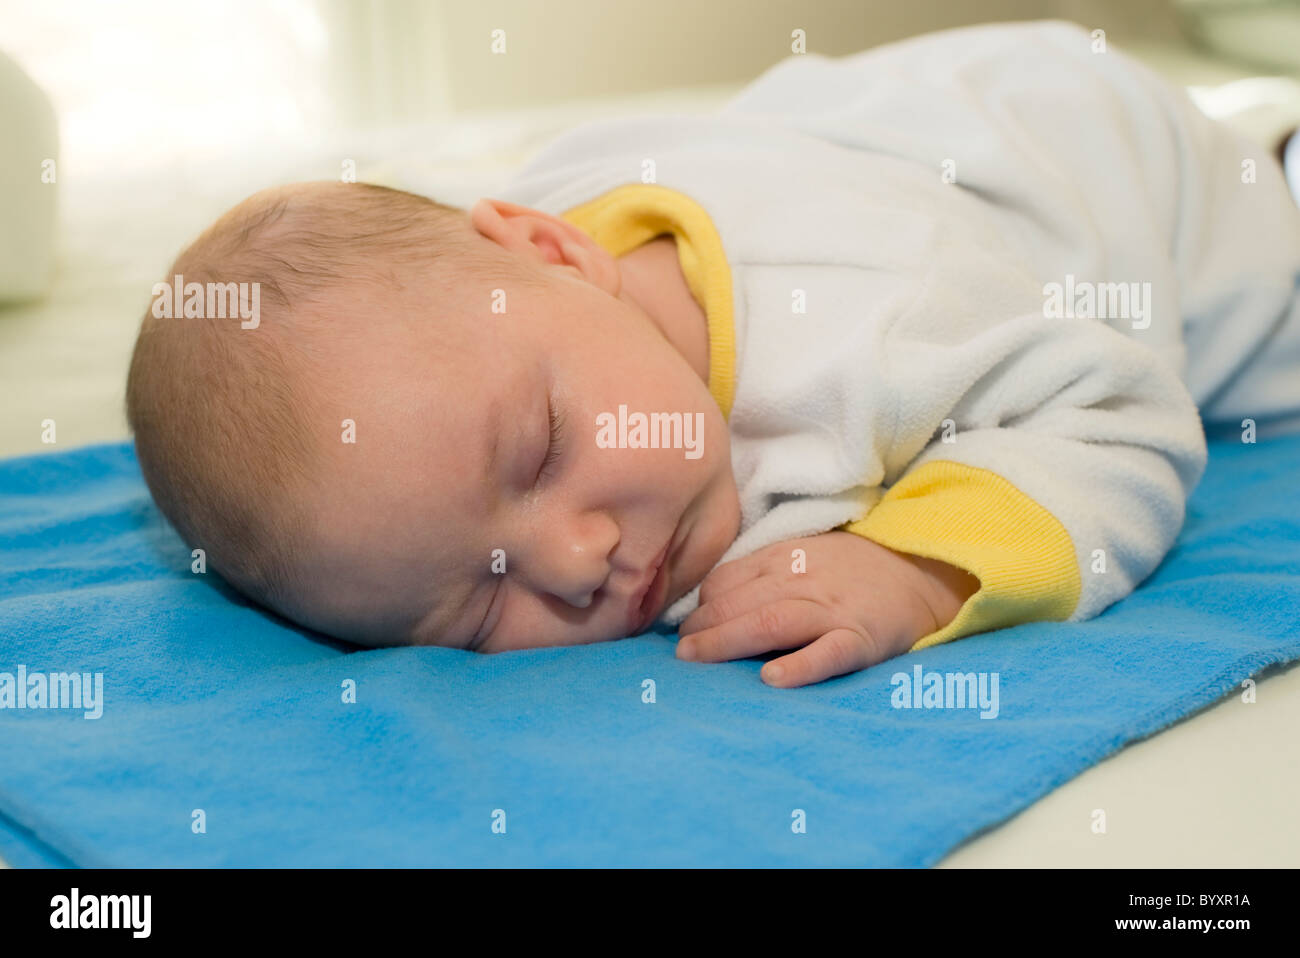 Sleeping 2 month old baby boy. Parent model released - Stock Image